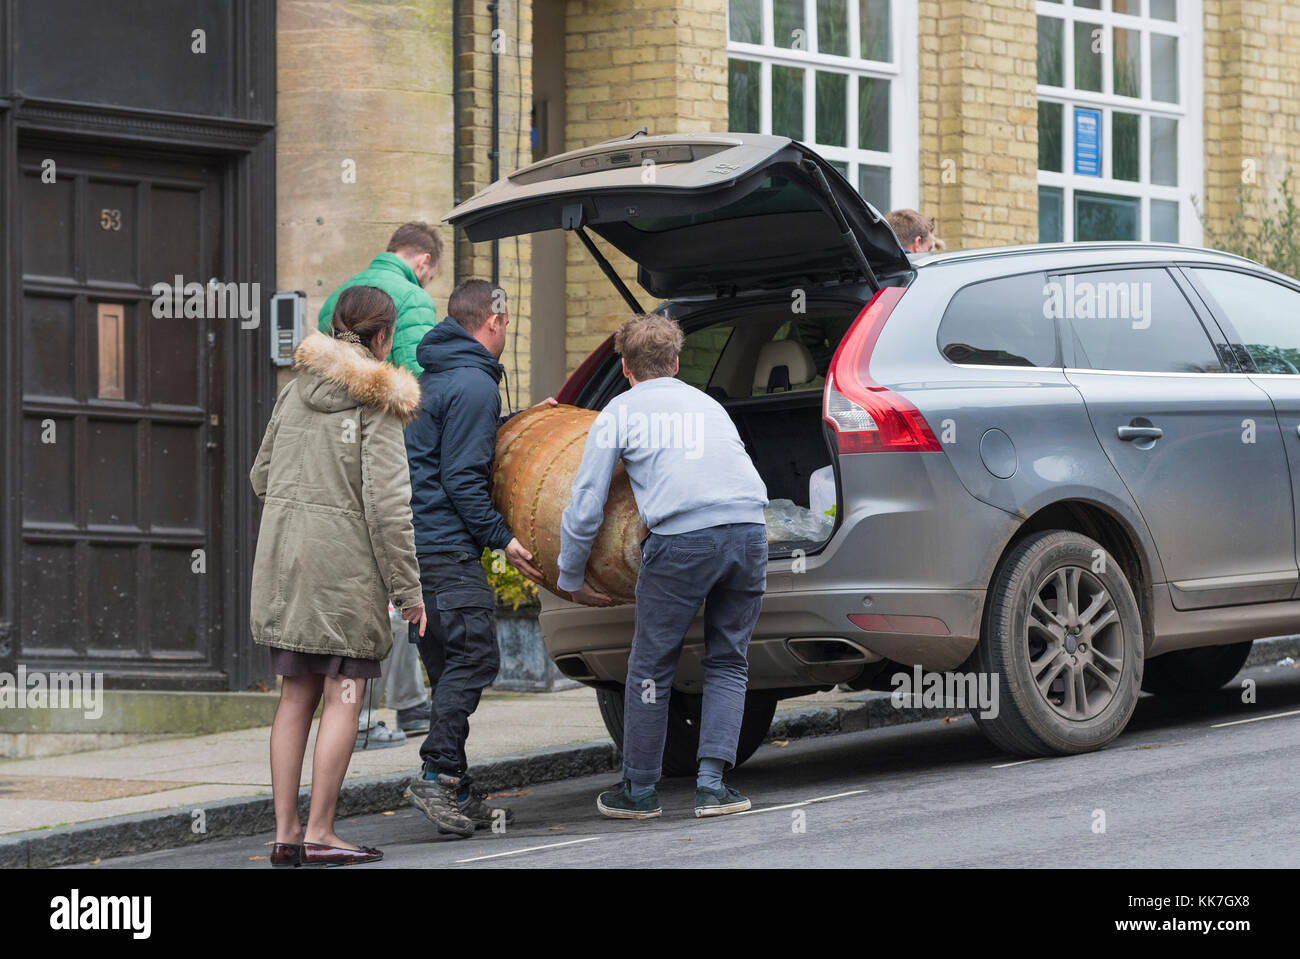 People loading heavy items into a car. - Stock Image